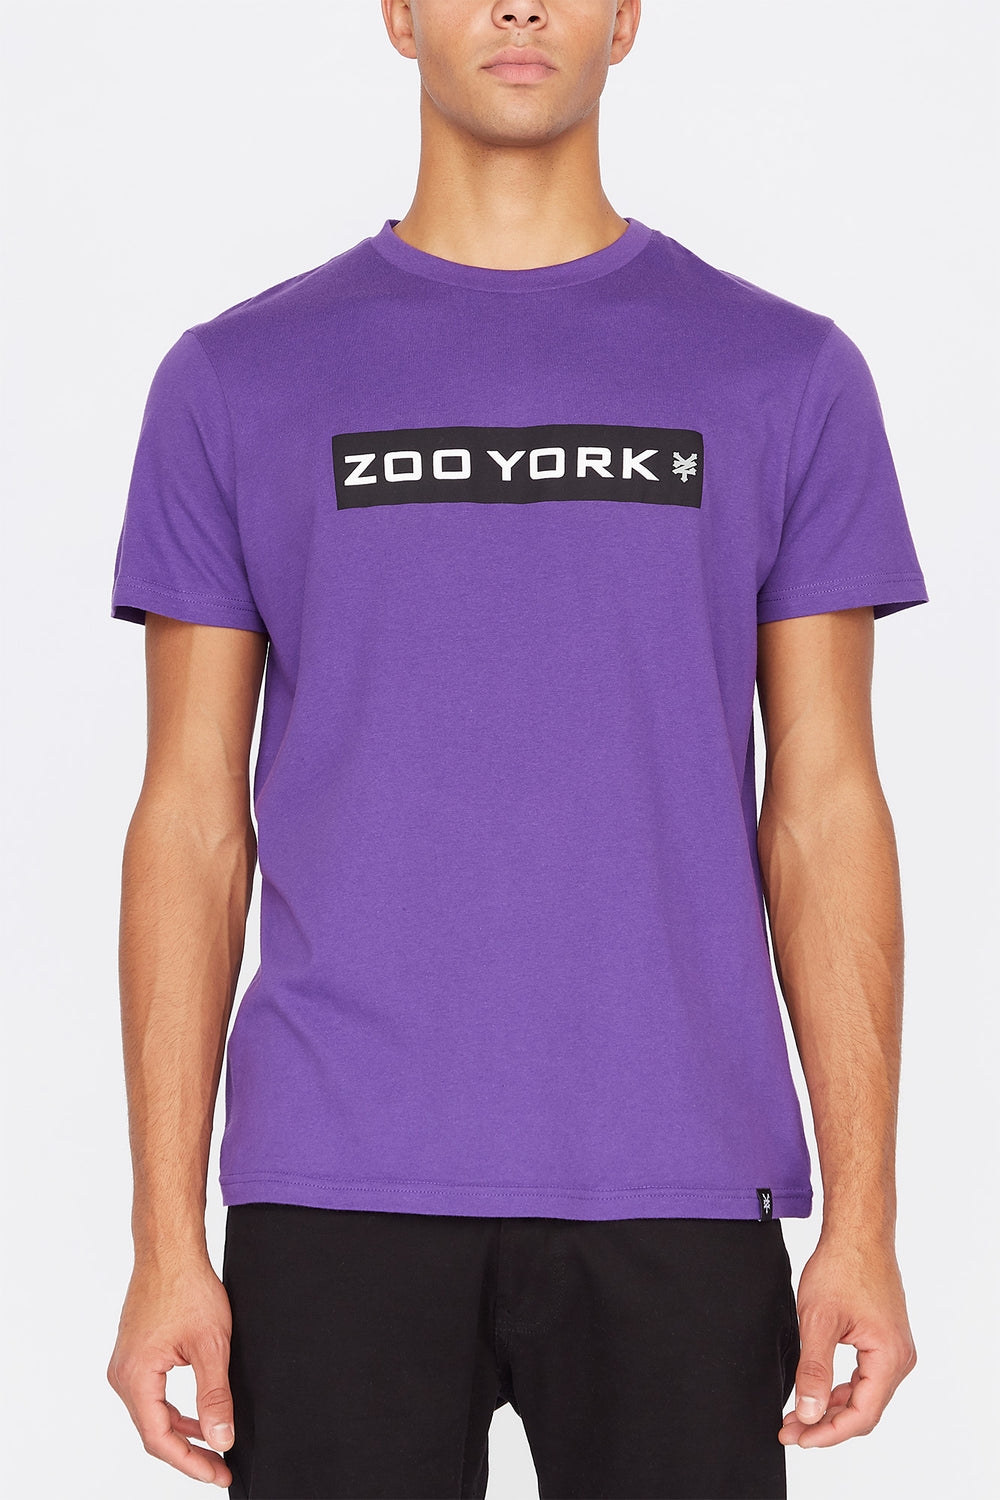 Zoo York Mens Box Logo T-Shirt Purple